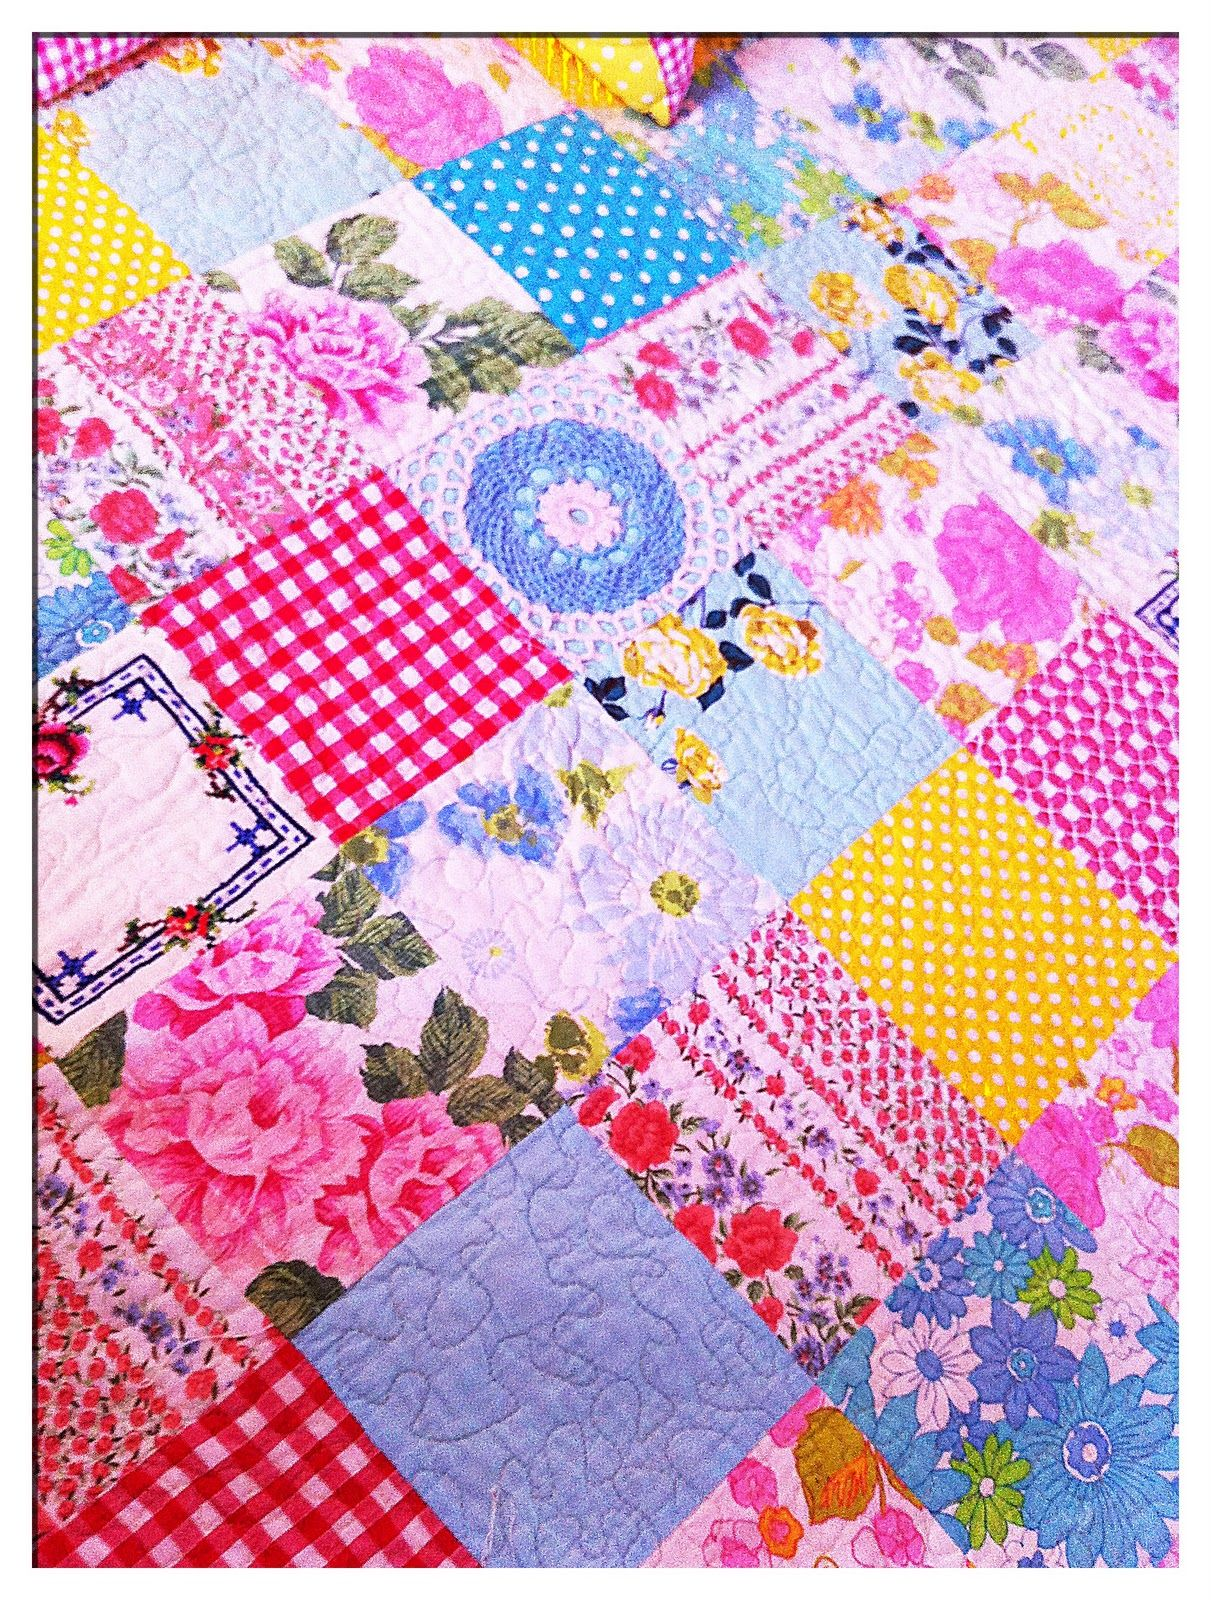 Quilt made from vintage sheets, tablecloths, doilies